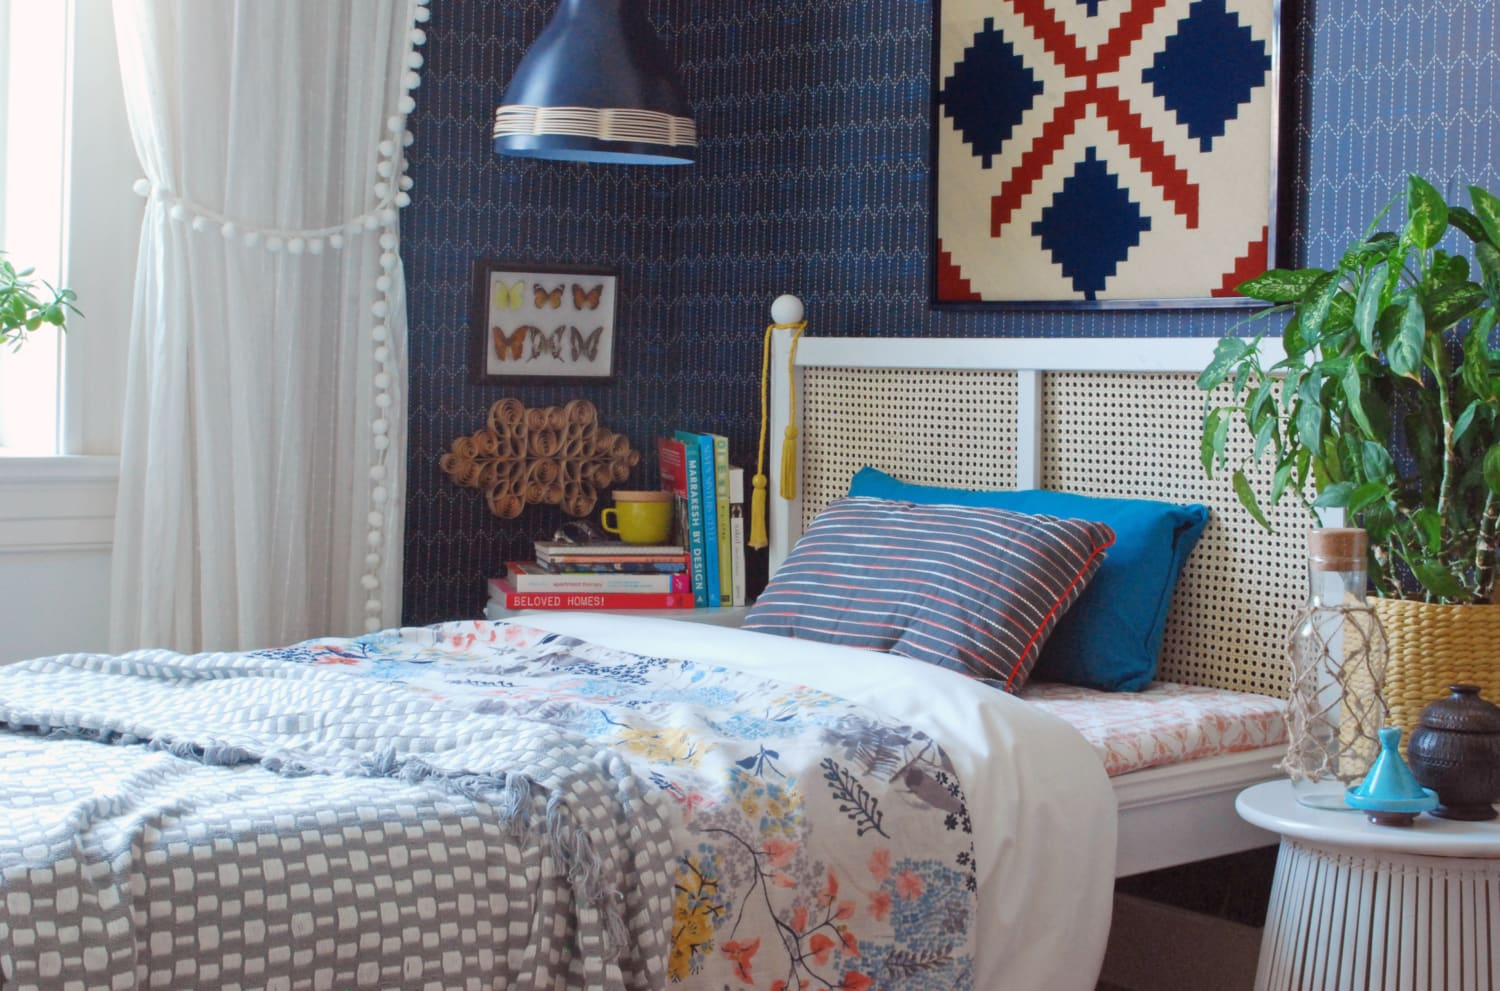 Hacks, DIYs and Creative Uses: The Most Popular IKEA Posts of the Year